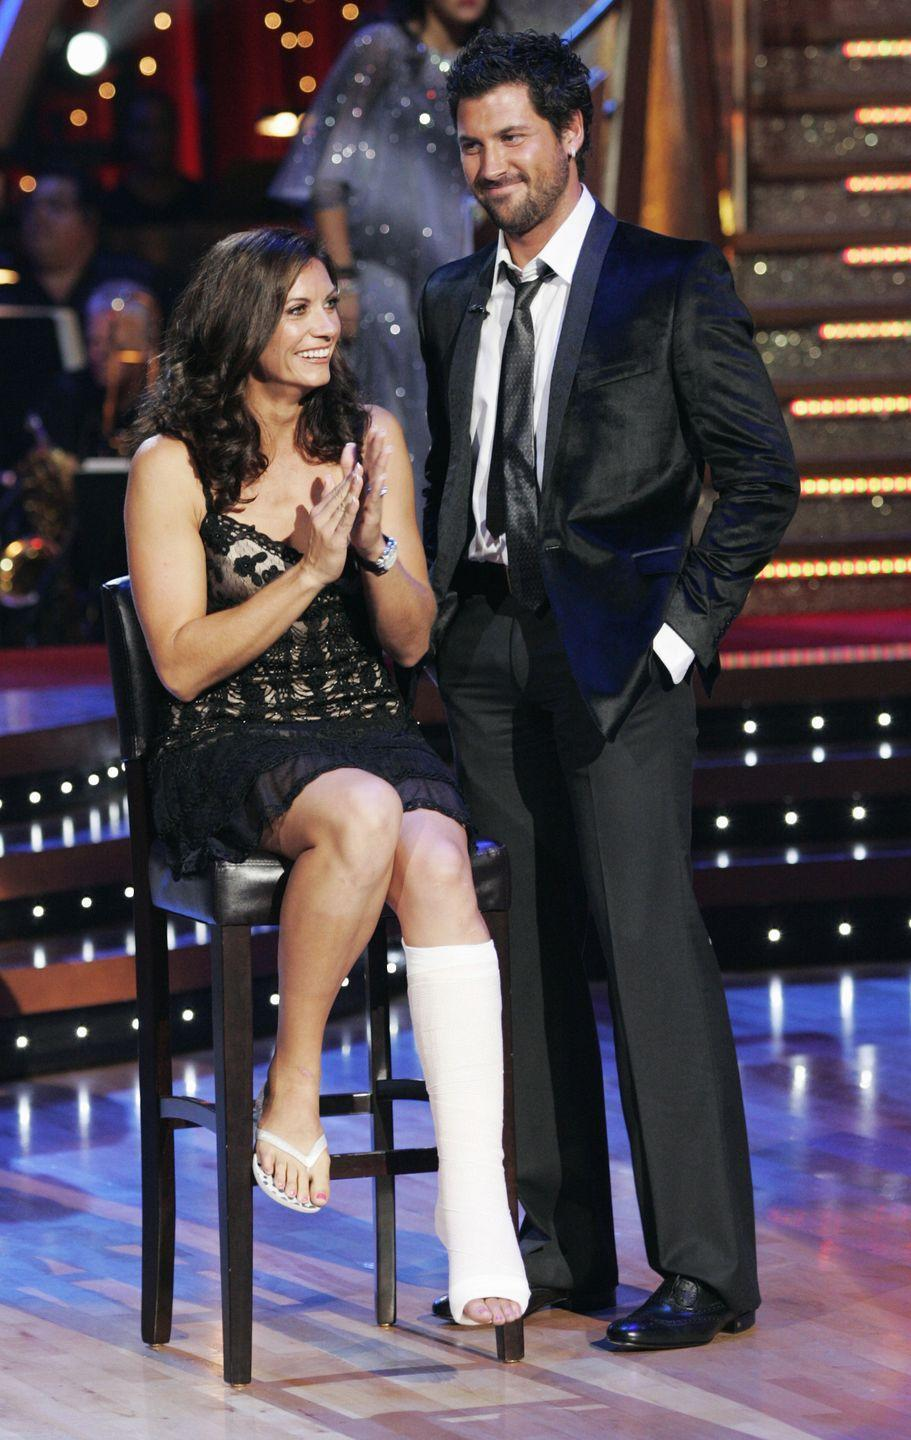 "<p>The Olympic gold medalist and beach volleyball champ suffered a torn Achilles tendon while practicing the jive during season seven. She could no longer dance and was forced to withdraw from the competition, per <em><a href=""https://people.com/tv/injury-forces-misty-may-treanor-to-leave-dancing/"" rel=""nofollow noopener"" target=""_blank"" data-ylk=""slk:People"" class=""link rapid-noclick-resp"">People</a></em>. She had surgery to repair her Achilles and appeared on the show in a leg cast and with crutches. </p>"